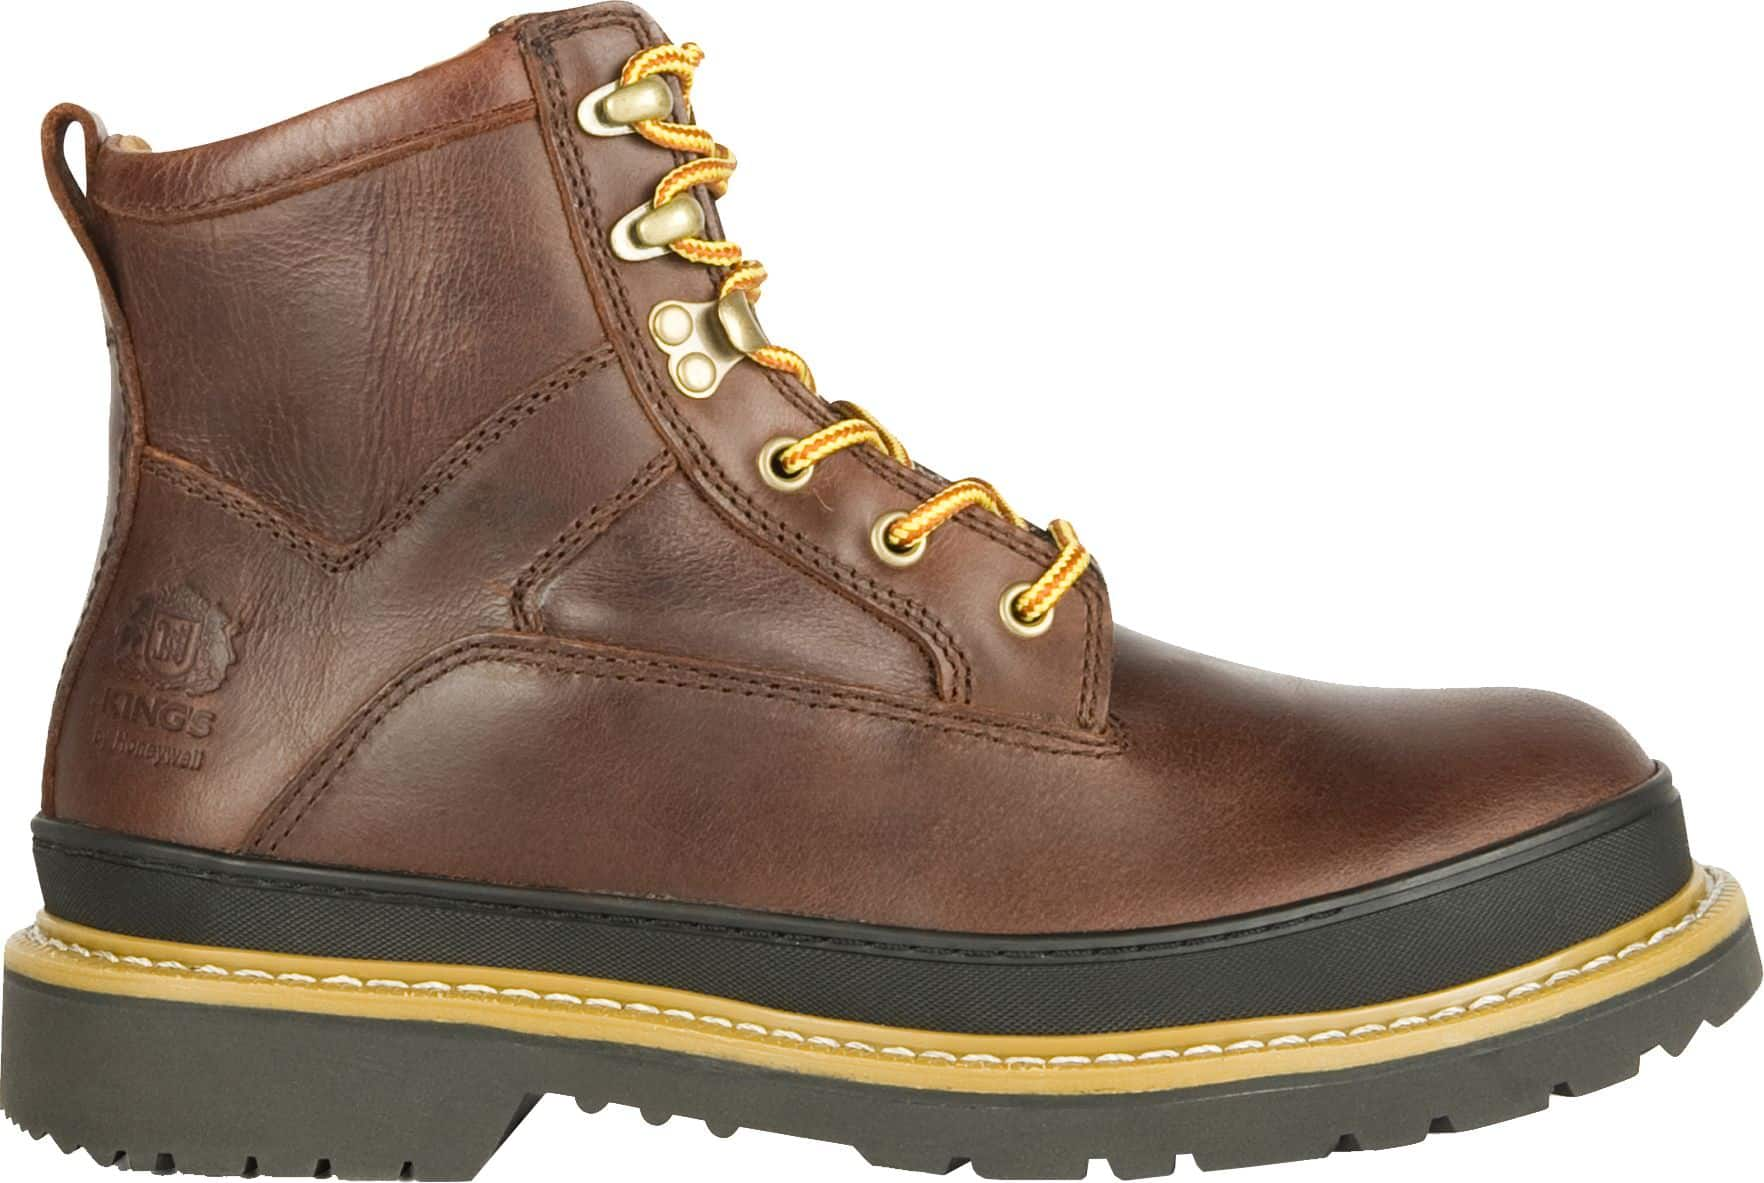 KING'S by Honeywell Men's Leather Welted Steel Toe Work Boots $24 + free shipping